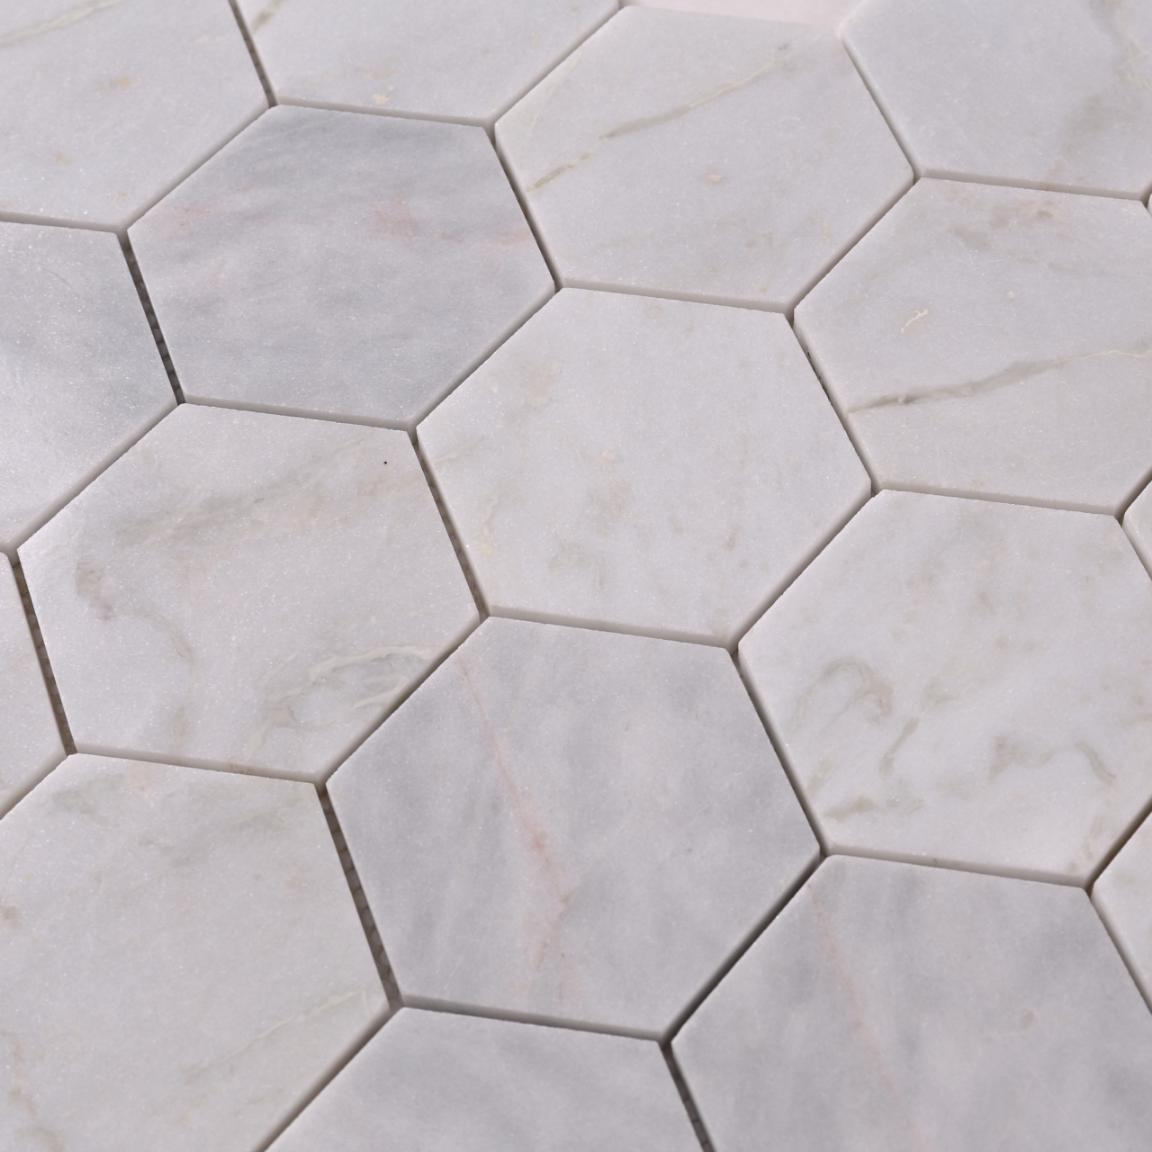 stone carrara herringbone design for bathroom Heng Xing